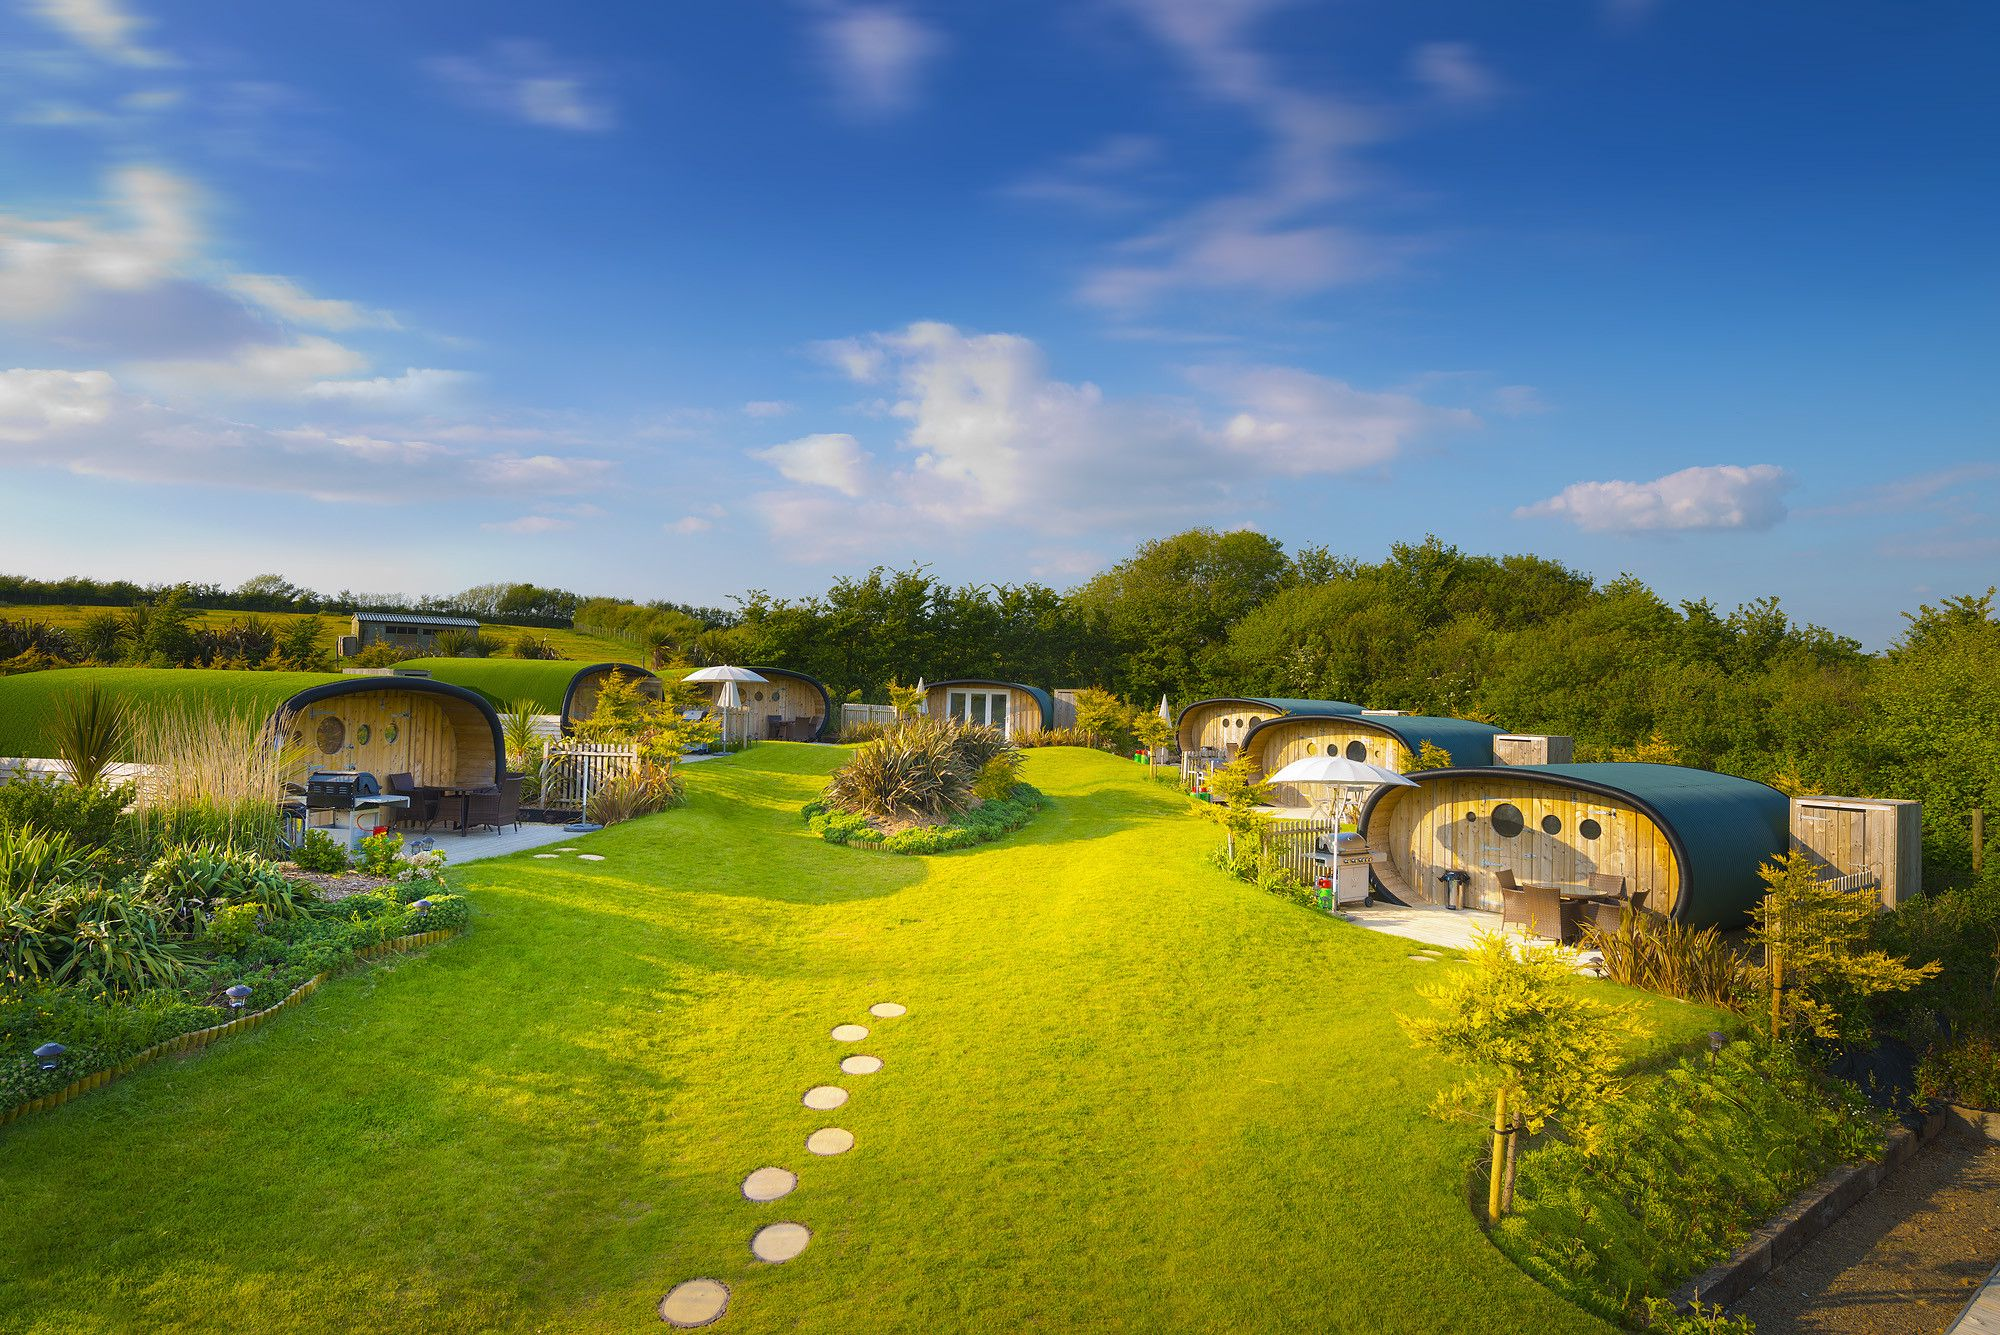 Campsites in Bude holidays at Glampingly